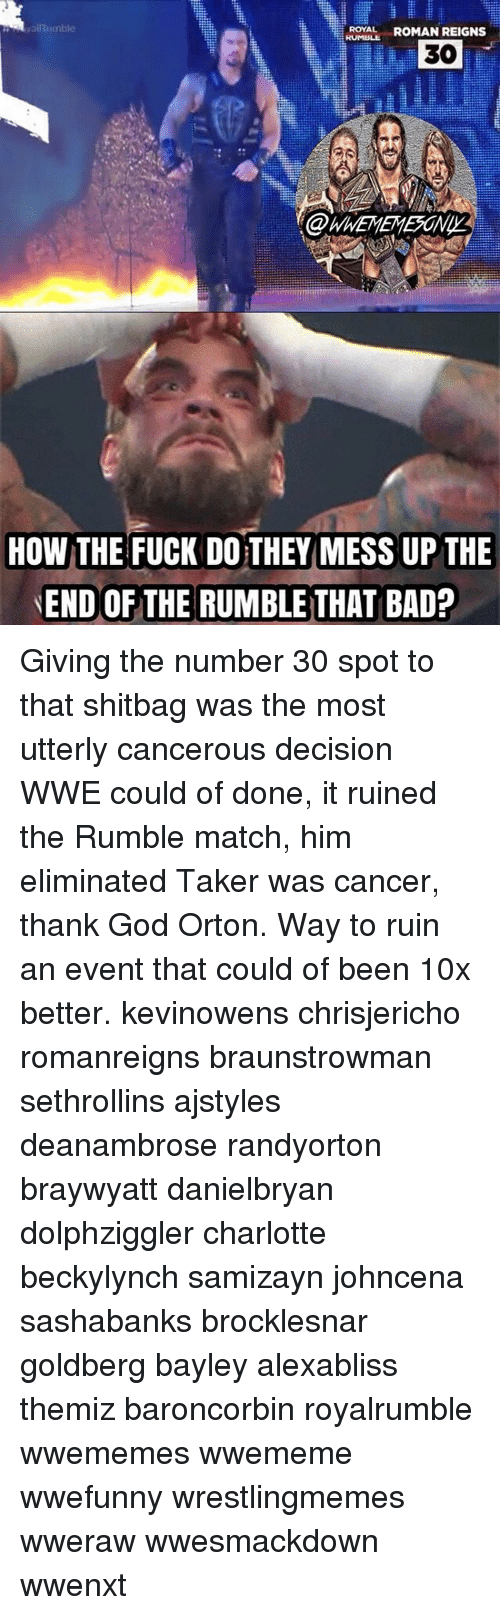 Roman Reigns: ya Rumble  ROYAL  ROMAN REIGNS  30  HOW THE FUCK DO THEY MESS UP THE  END OF THE RUMBLE THAT BAD? Giving the number 30 spot to that shitbag was the most utterly cancerous decision WWE could of done, it ruined the Rumble match, him eliminated Taker was cancer, thank God Orton. Way to ruin an event that could of been 10x better. kevinowens chrisjericho romanreigns braunstrowman sethrollins ajstyles deanambrose randyorton braywyatt danielbryan dolphziggler charlotte beckylynch samizayn johncena sashabanks brocklesnar goldberg bayley alexabliss themiz baroncorbin royalrumble wwememes wwememe wwefunny wrestlingmemes wweraw wwesmackdown wwenxt